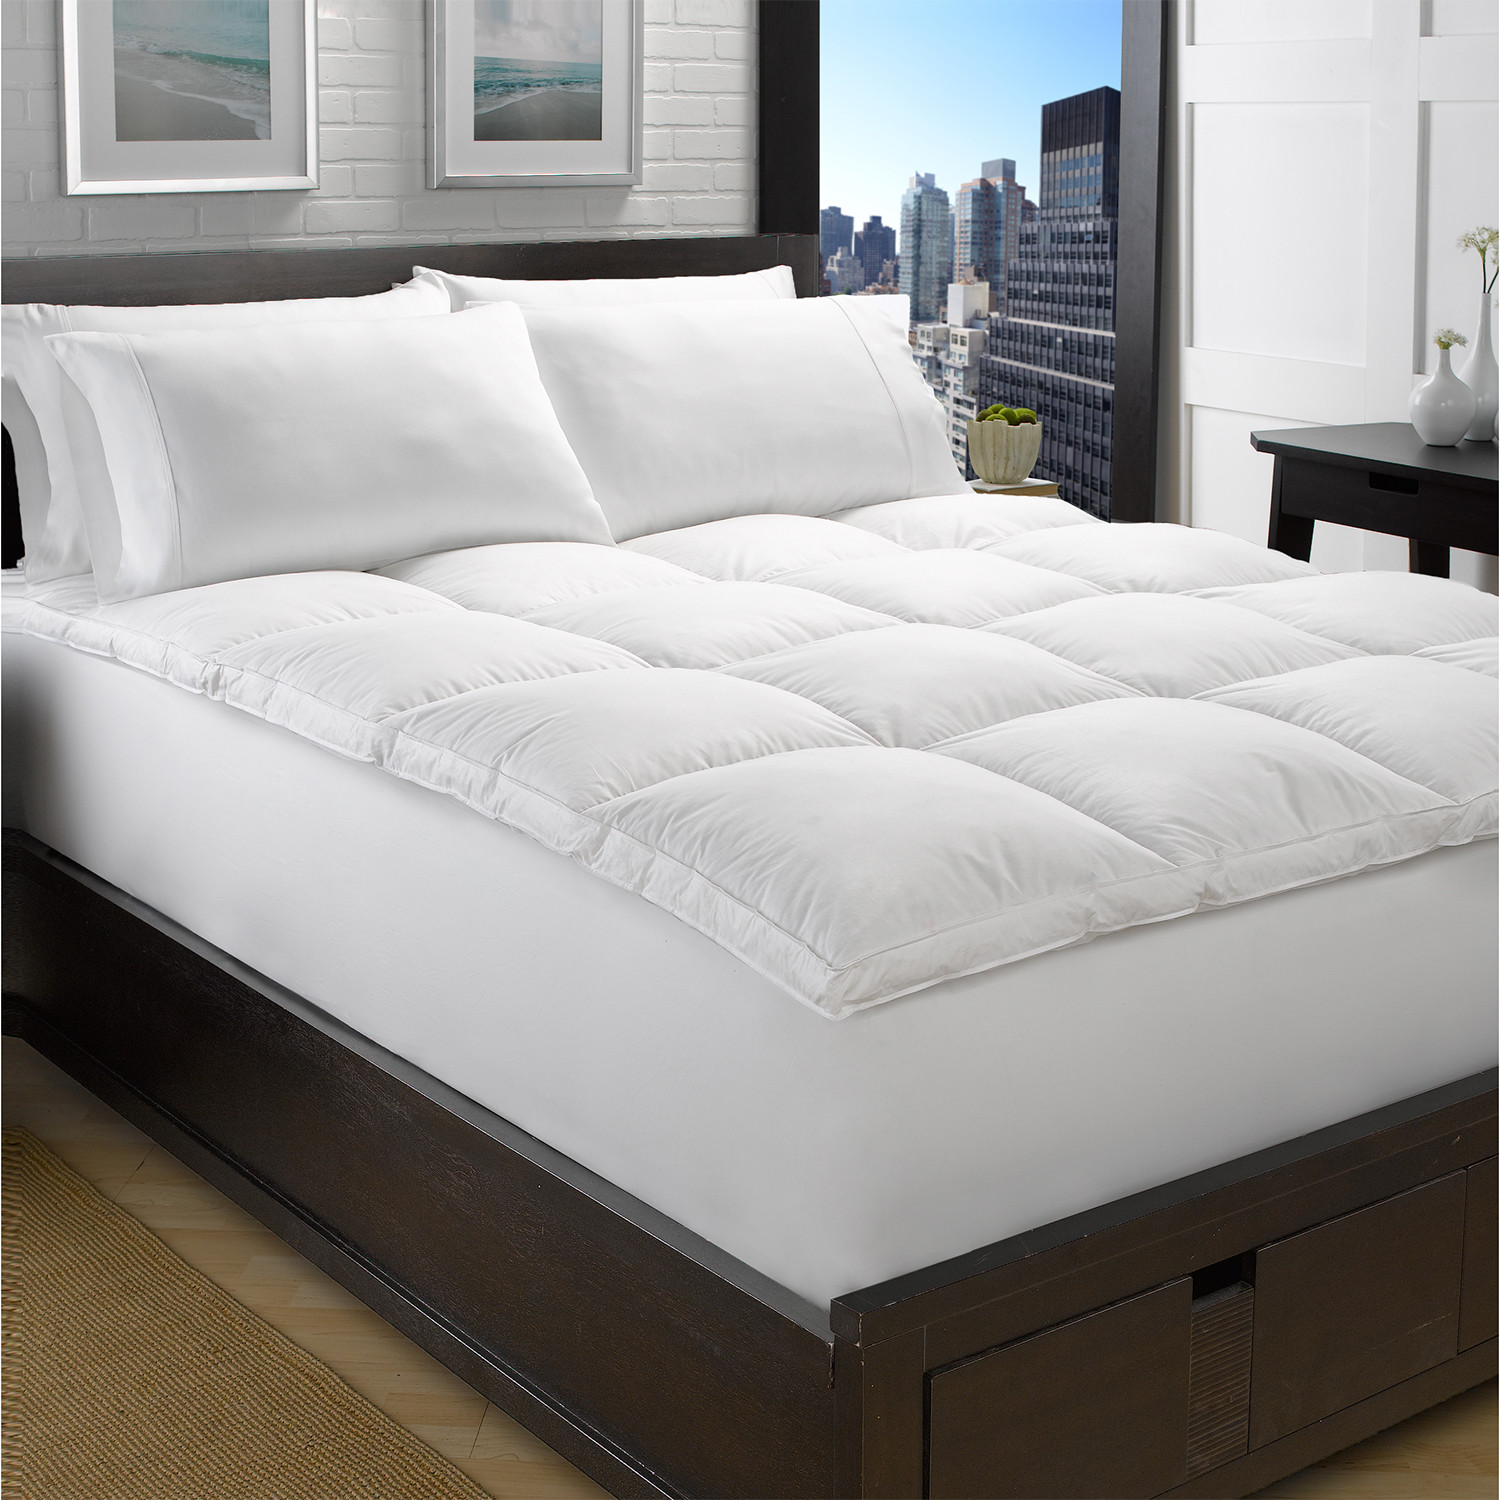 Exquisite Hotel Collection White Goose Down Feather Mattress